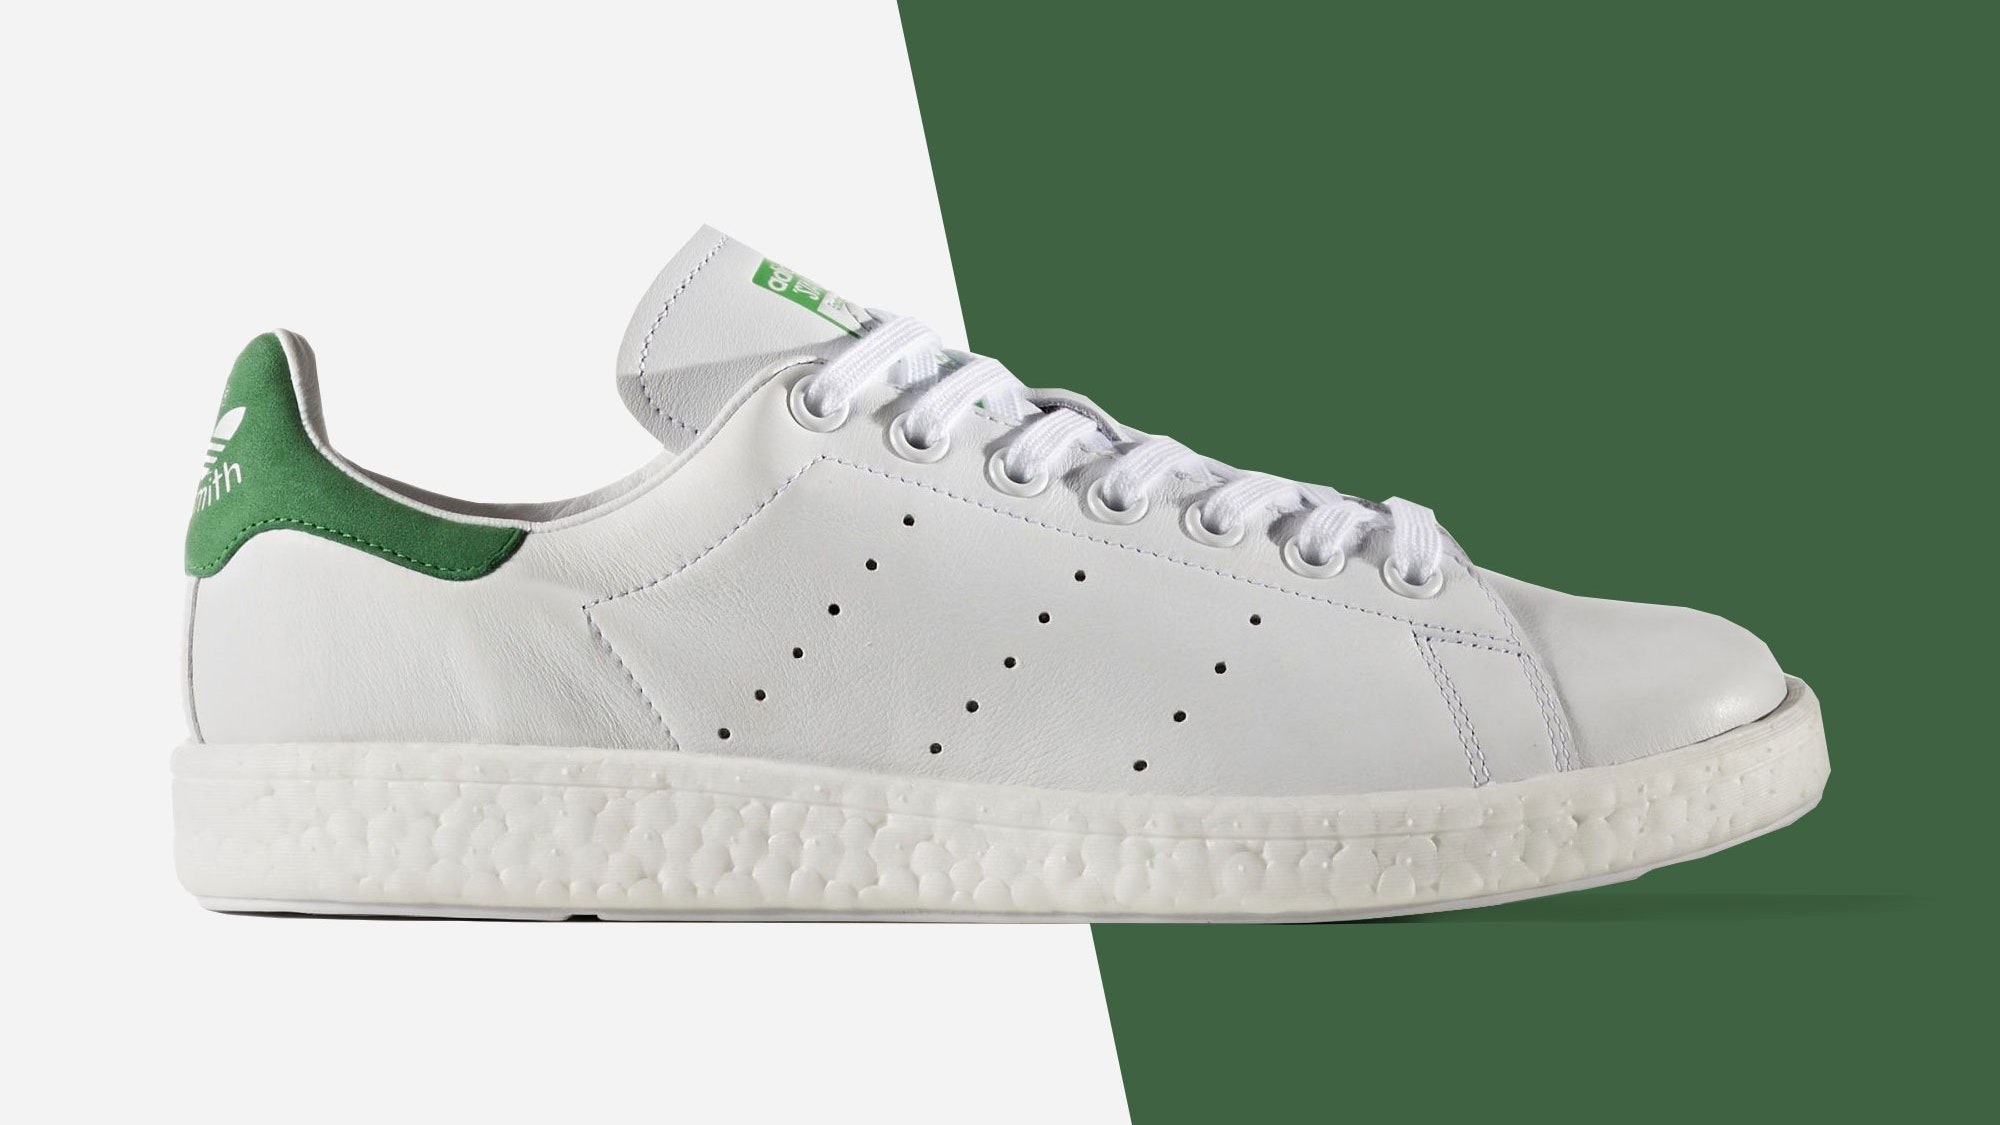 90% of Adidas Products Will Be Sustainable By 2025, Leather-Free Stan Smith Leads the Way